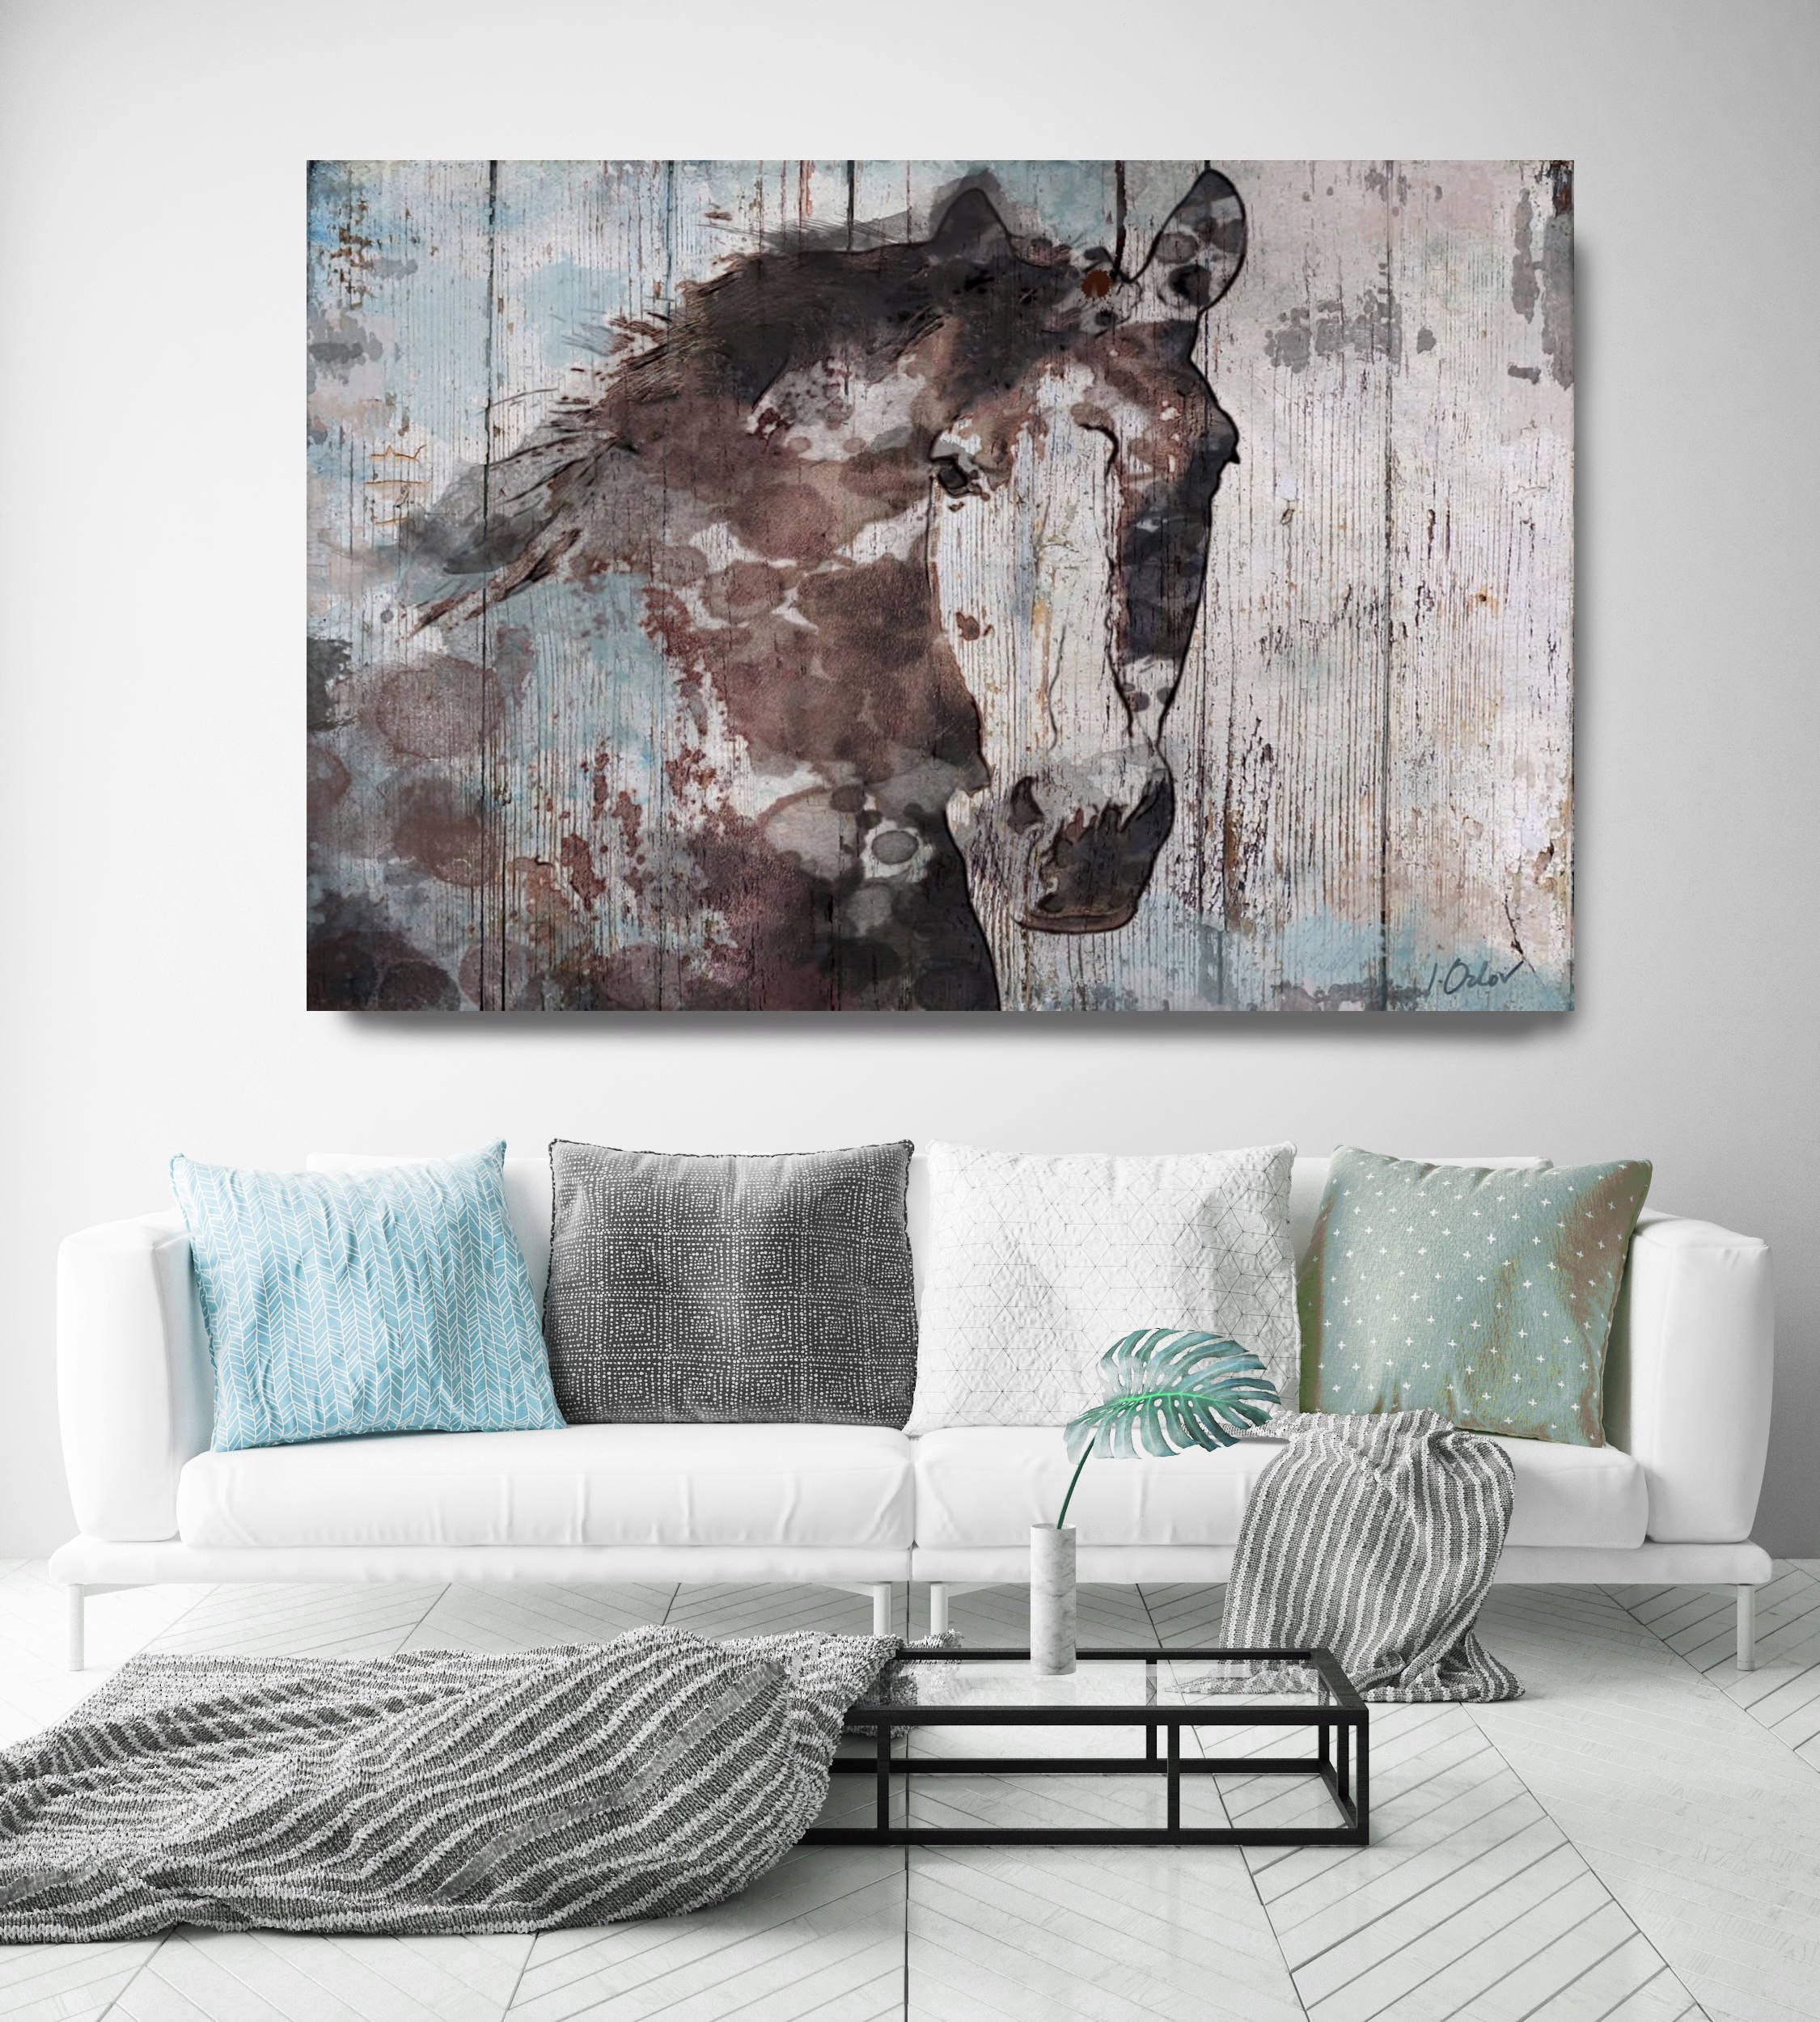 Wild Blue Horse Extra Large Horse Wall Decor Brown Rustic Horse Large Horse Portrait Canvas Art Print Abstract Horse Equine Art Horse Horses Wall Decor Wall Art Decor Living Room Horse